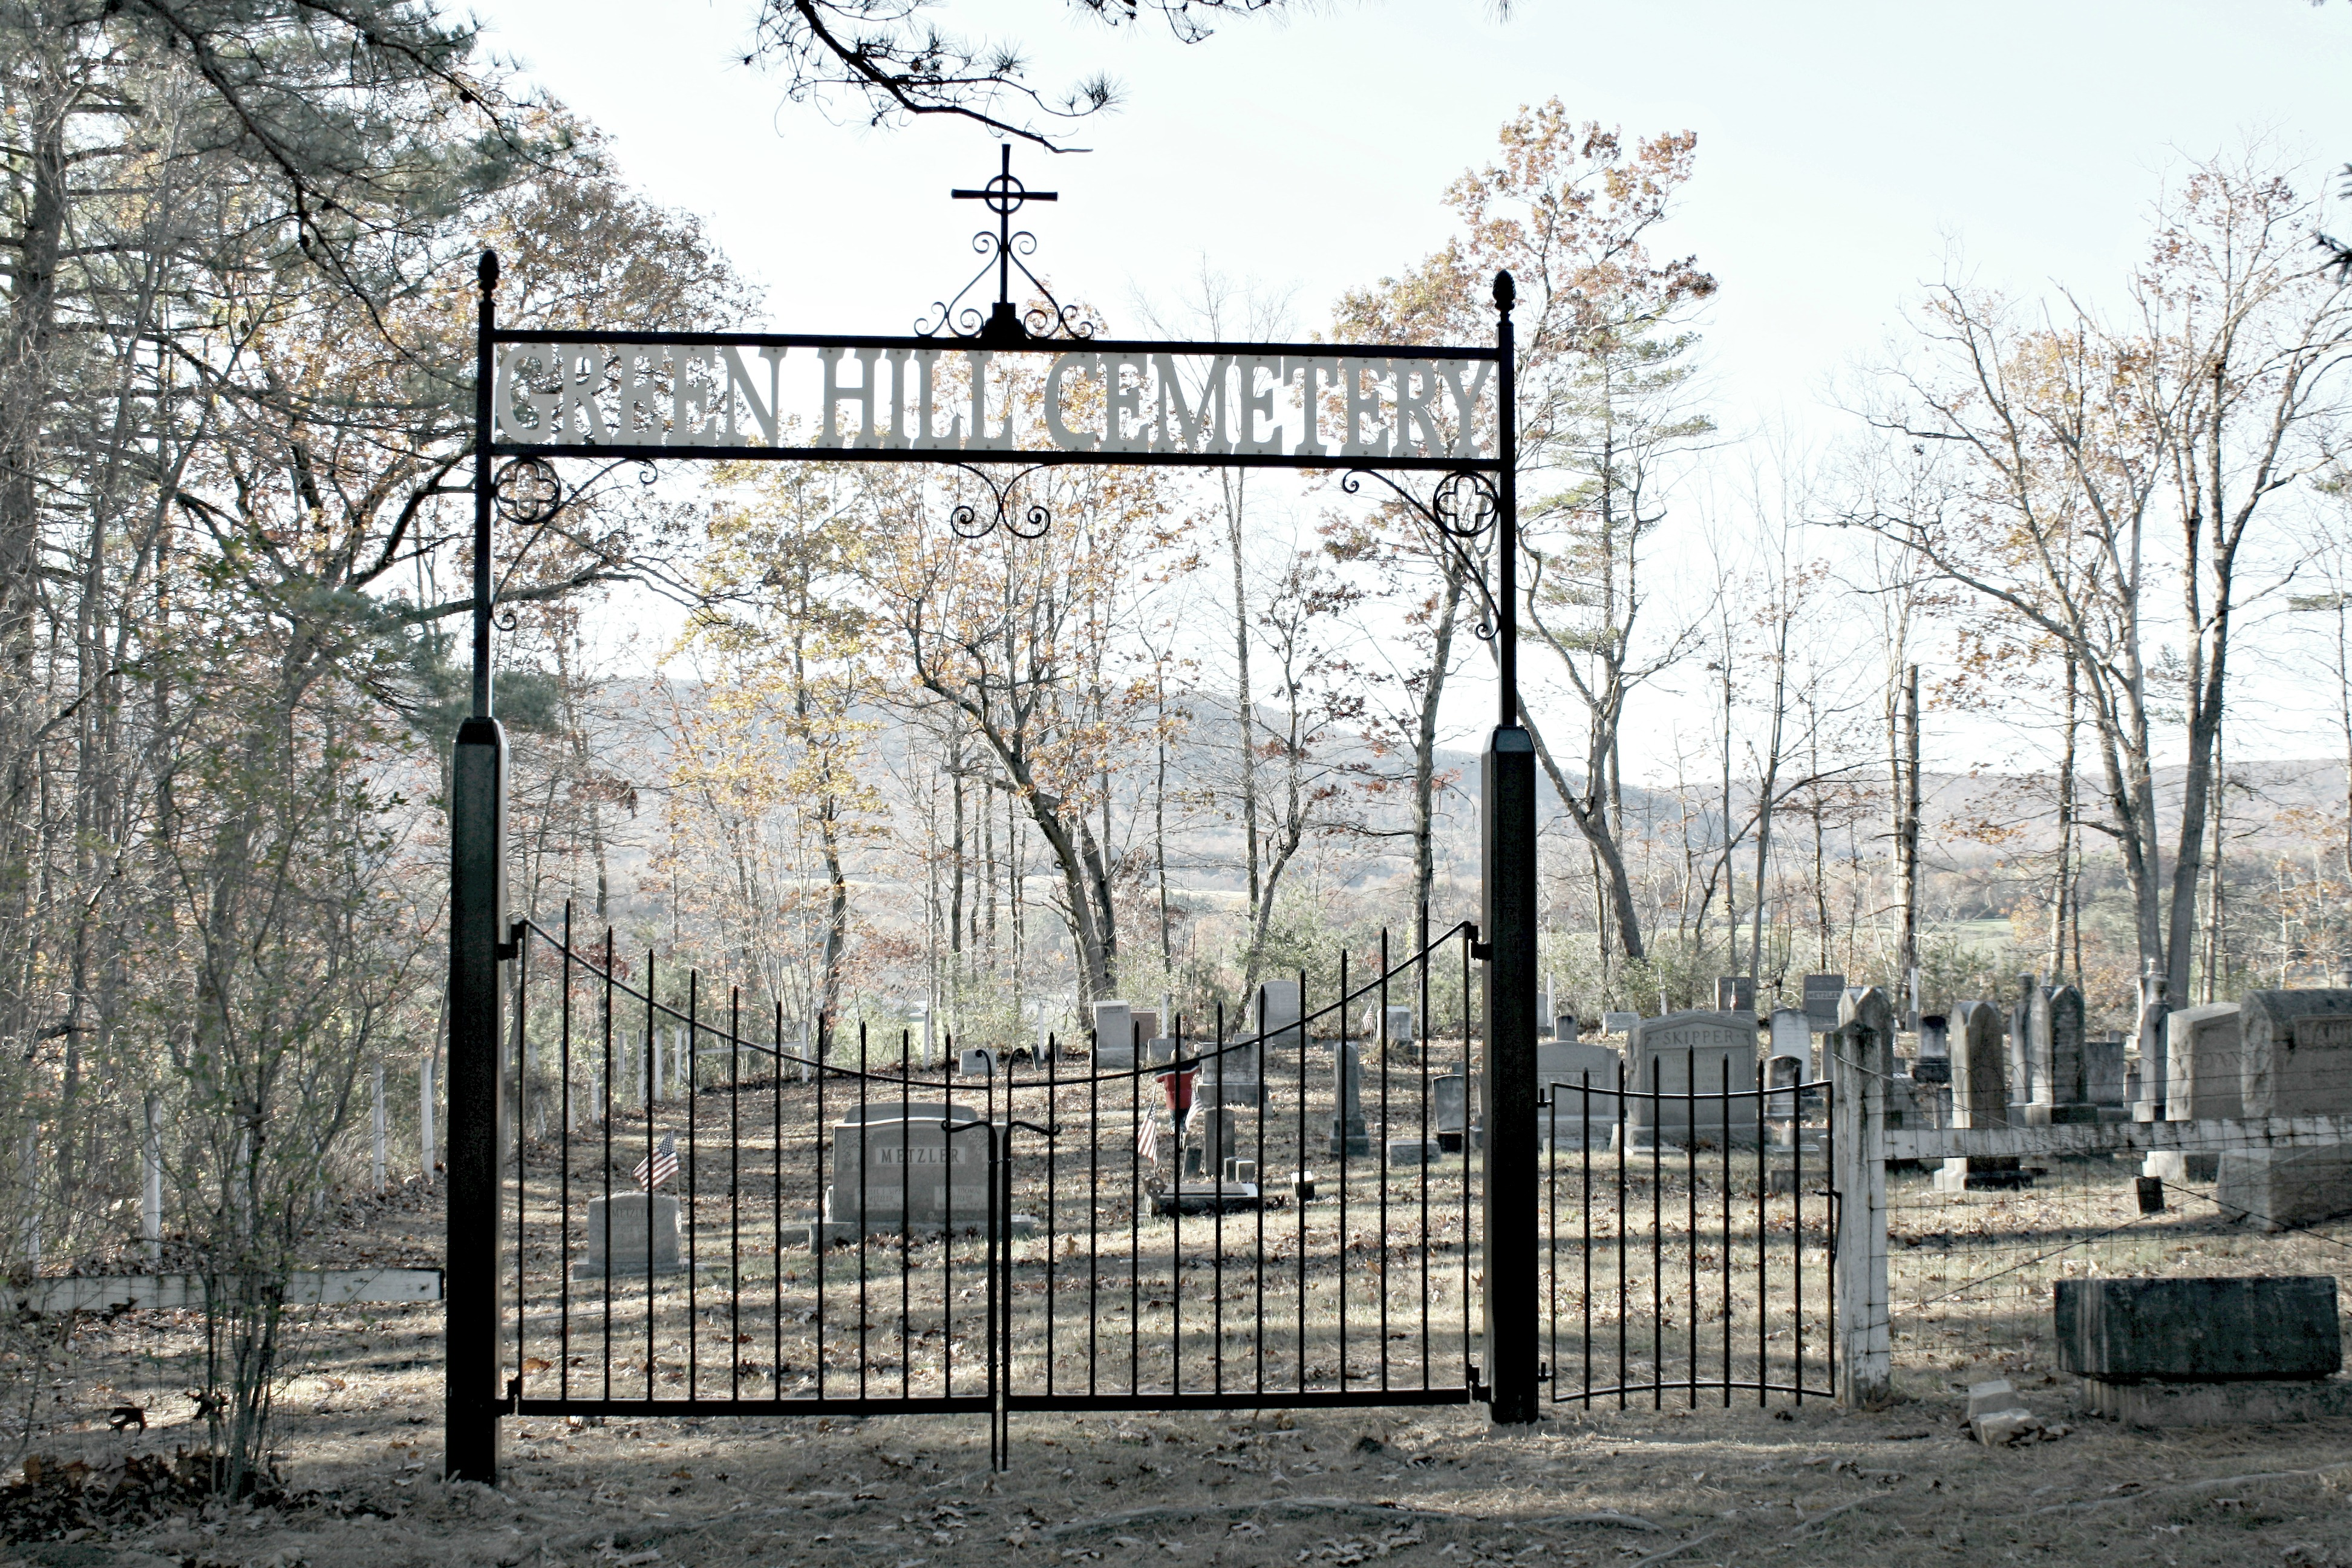 Cemetery Archway and Iron Gate